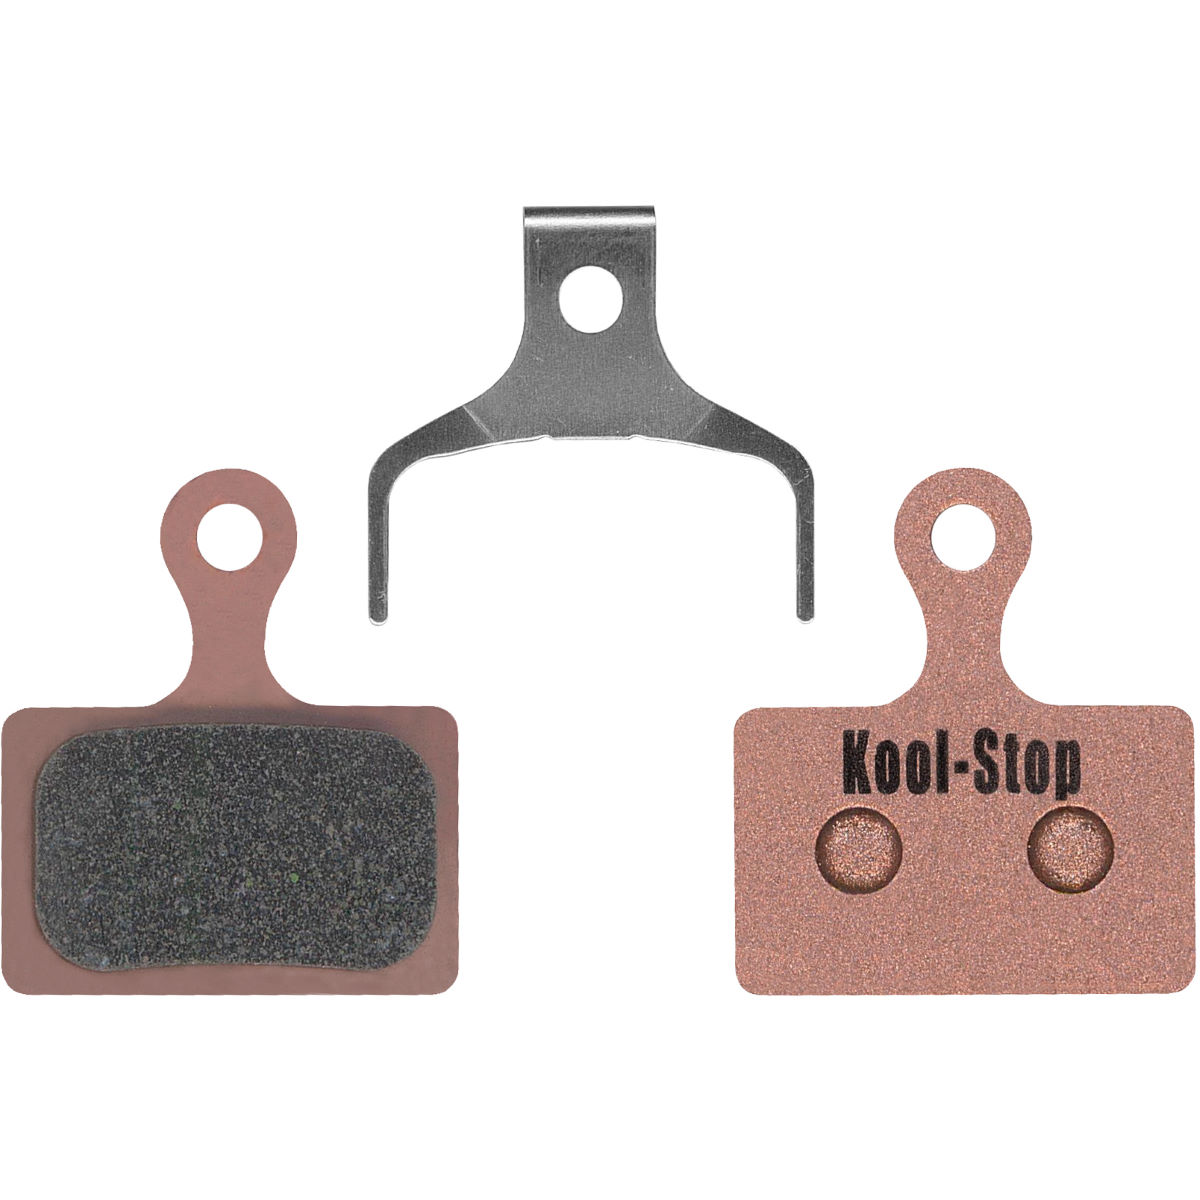 Kool Stop Kool Stop D625S Shimano Direct Mount Sintered Brake Pads   Disc Brake Pads